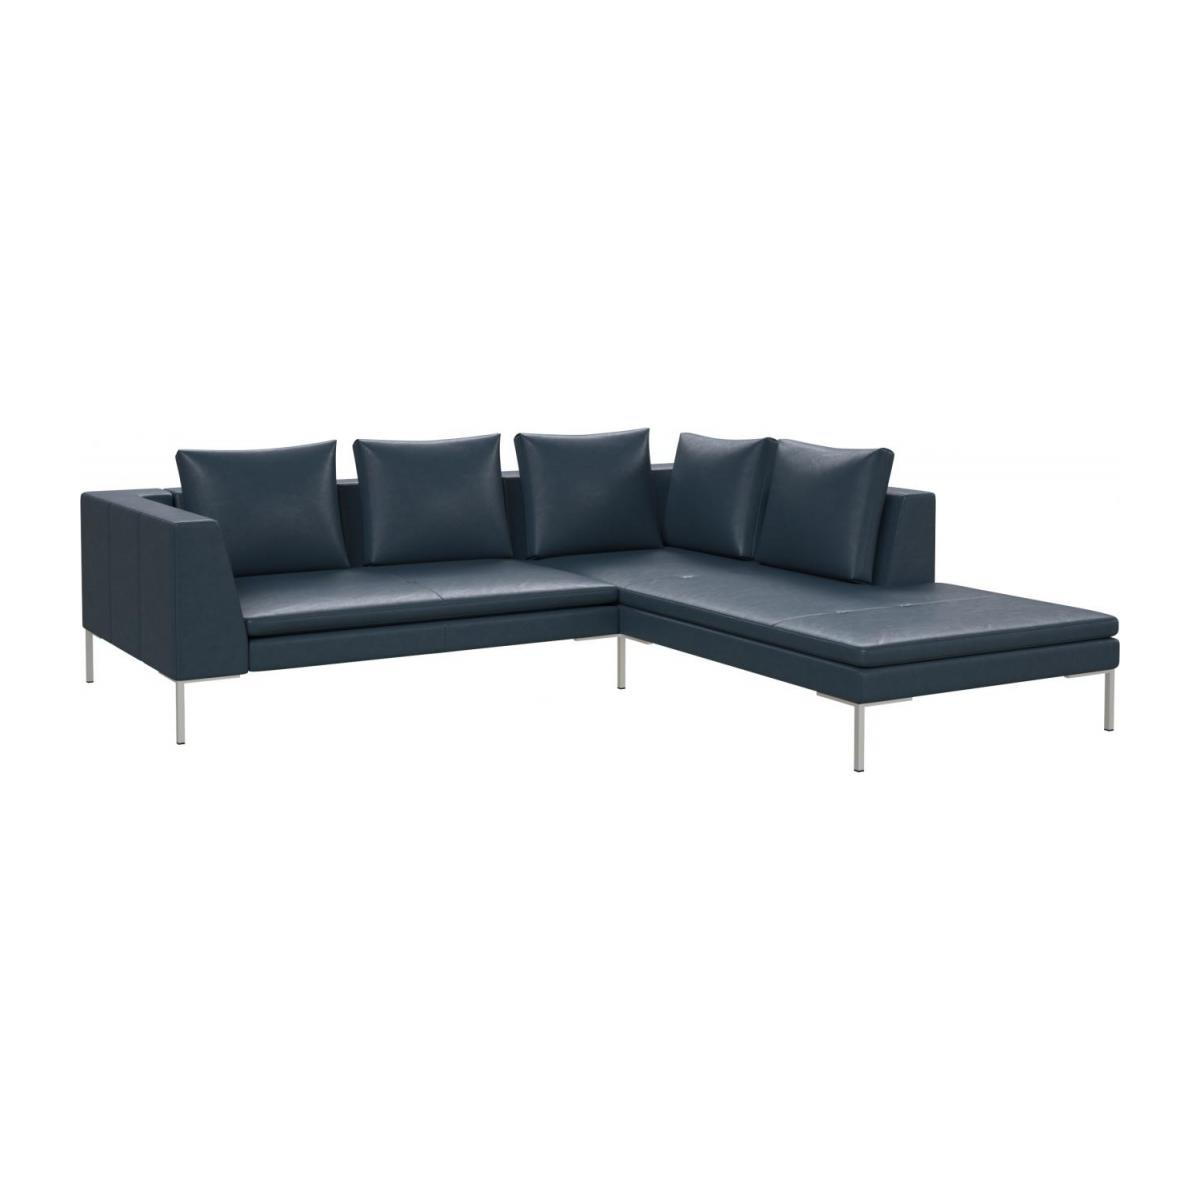 2 seater sofa with chaise longue on the right in Vintage aniline leather, denim blue  n°1